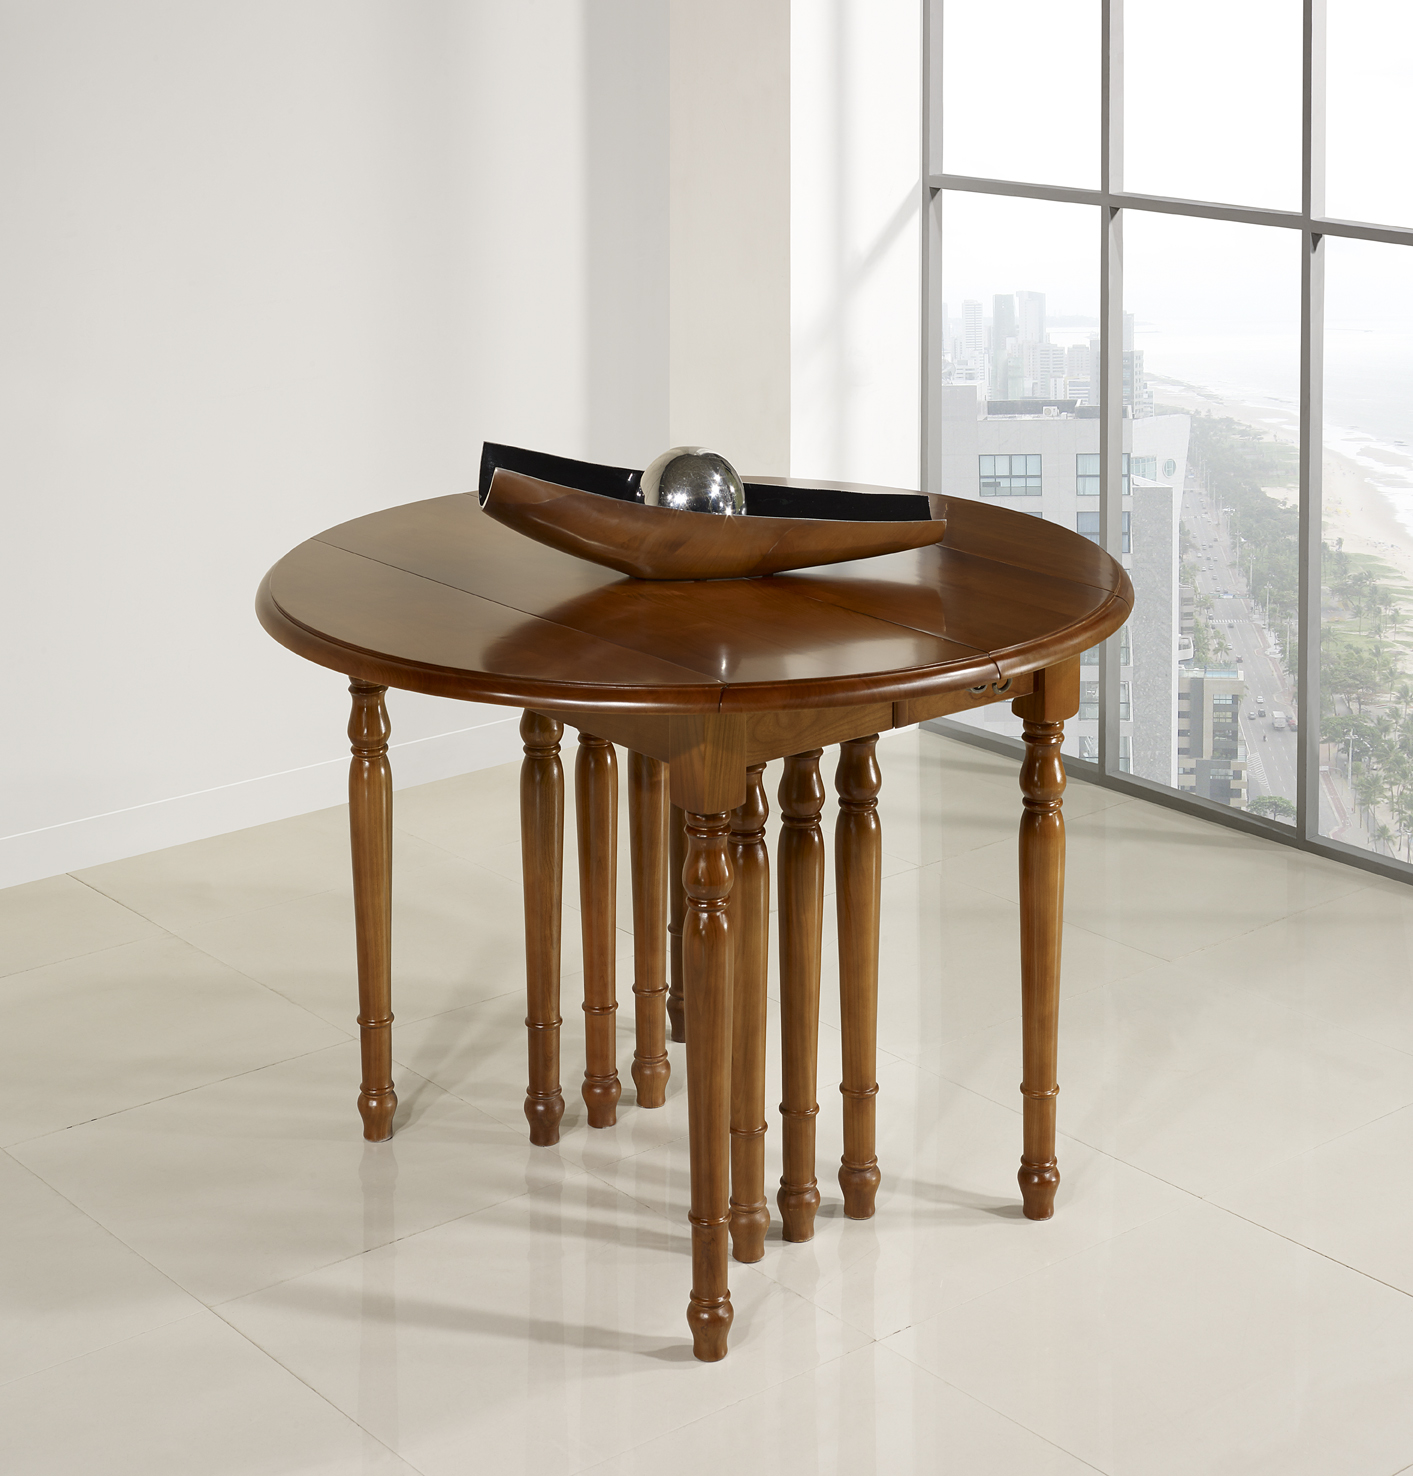 Table Ronde Allonges Table Ronde à Volets Diametre 120 Réalisée En Merisier Massif De Style Louis Philippe 10 Allonges De 40 Cm